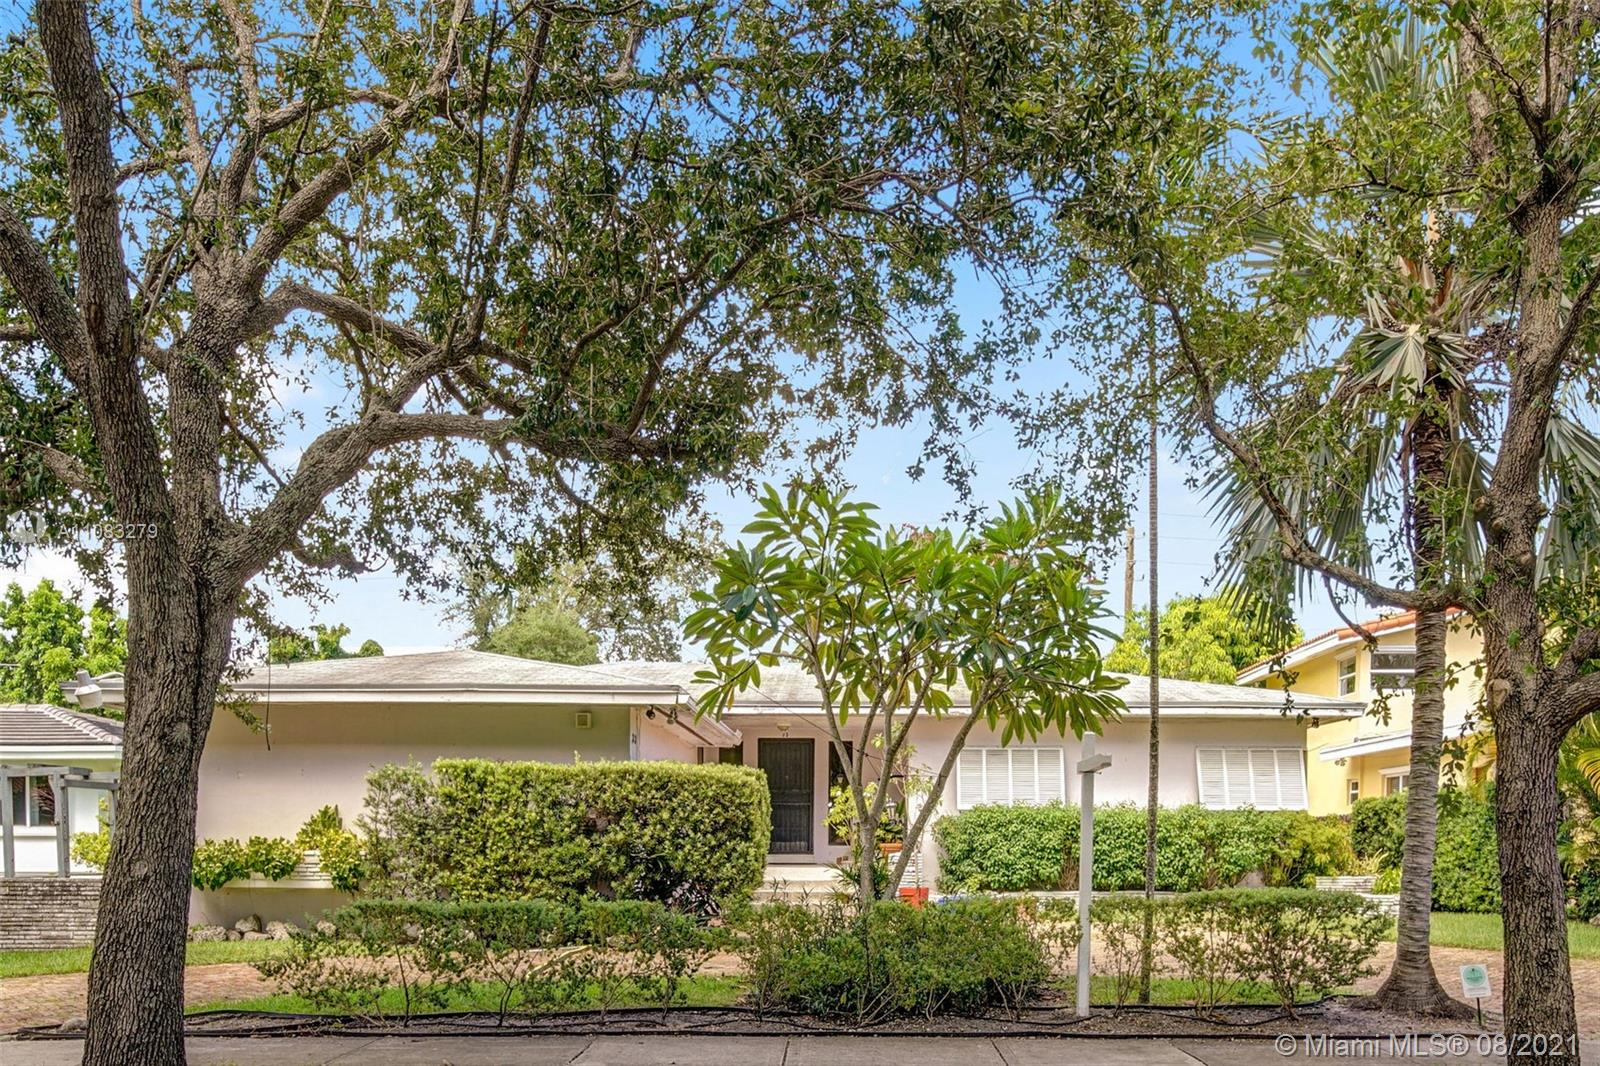 Terrific opportunity to live in Miami's most sought after neighborhood. Bay Heights is a jewel of an enclave within North Coconut Grove. Low traffic streets, wide sidewalks & lush mature trees. A neighborhood where kids still ride bikes and visit friends. This home is one of the few adjacent to the parcel owned by Vizcaya (the site of the former planeterium) which is being transformed into a nature preserve and greenhouse. No busy street, neighbors or noise behind you, Complete privacy and serenity, 24 hr roving patrol. This classic 50's ranch with it's terrific layout & oversized 9225 sq ft lot has potential to be a very special modern home.  Chicago Brick circular drive, 2 car garage. Not in flood zone yet walk to bay and Hobie Beach!  see Broker's Remarks for showing instructions.